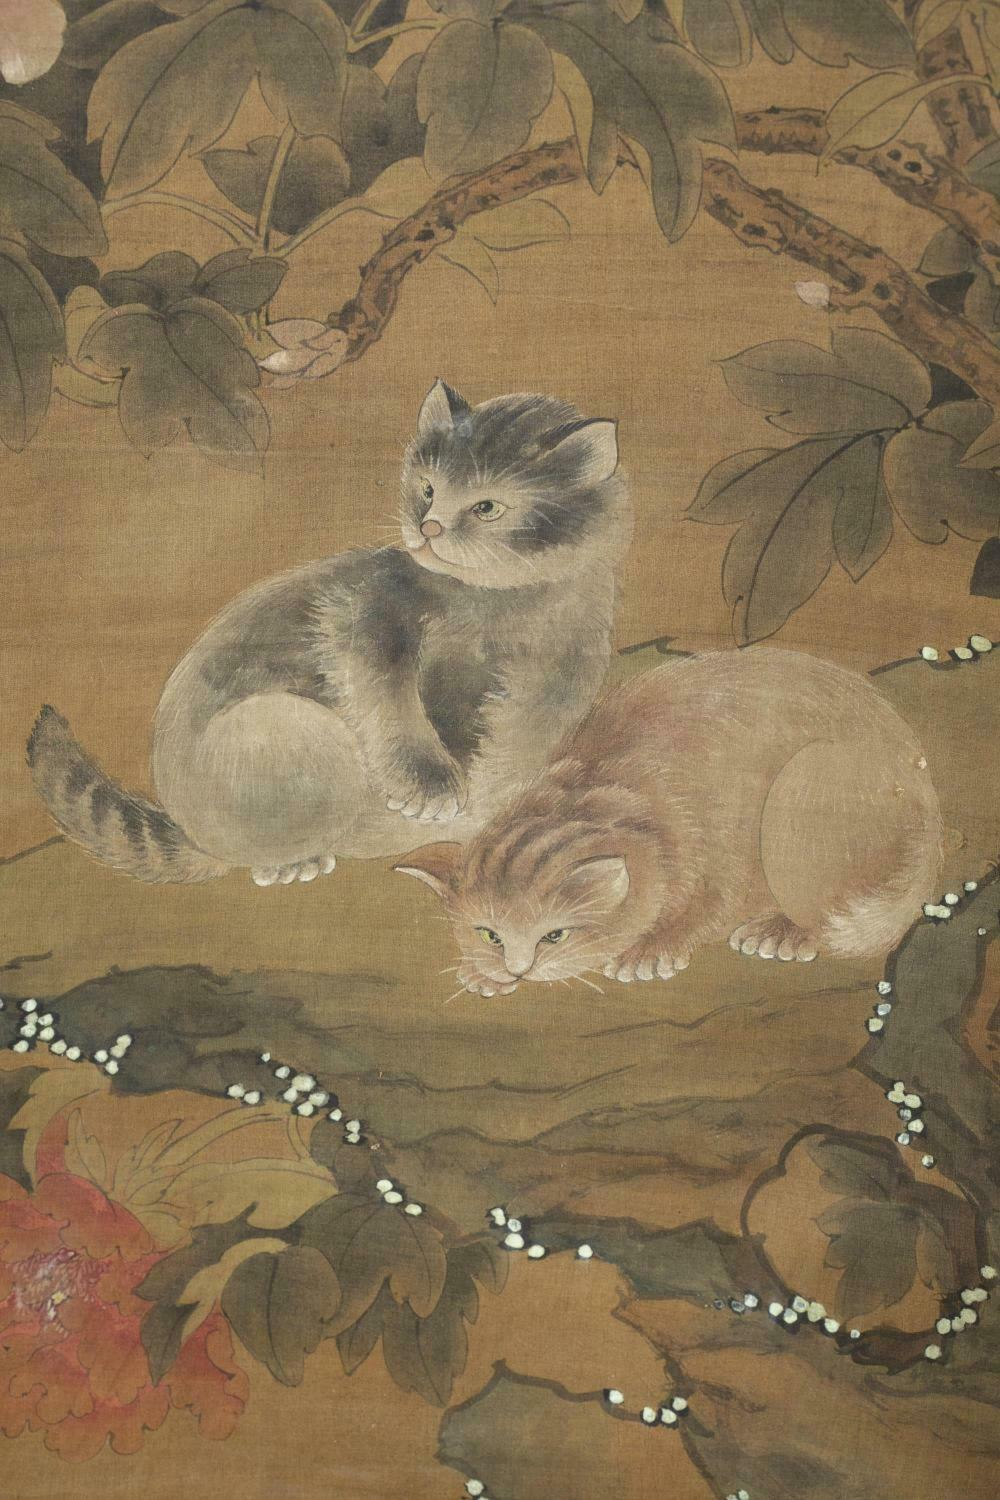 Pair of cats and butterflies by Lu Chuan, Qing Dynasty. Chinese antique silk scroll painting